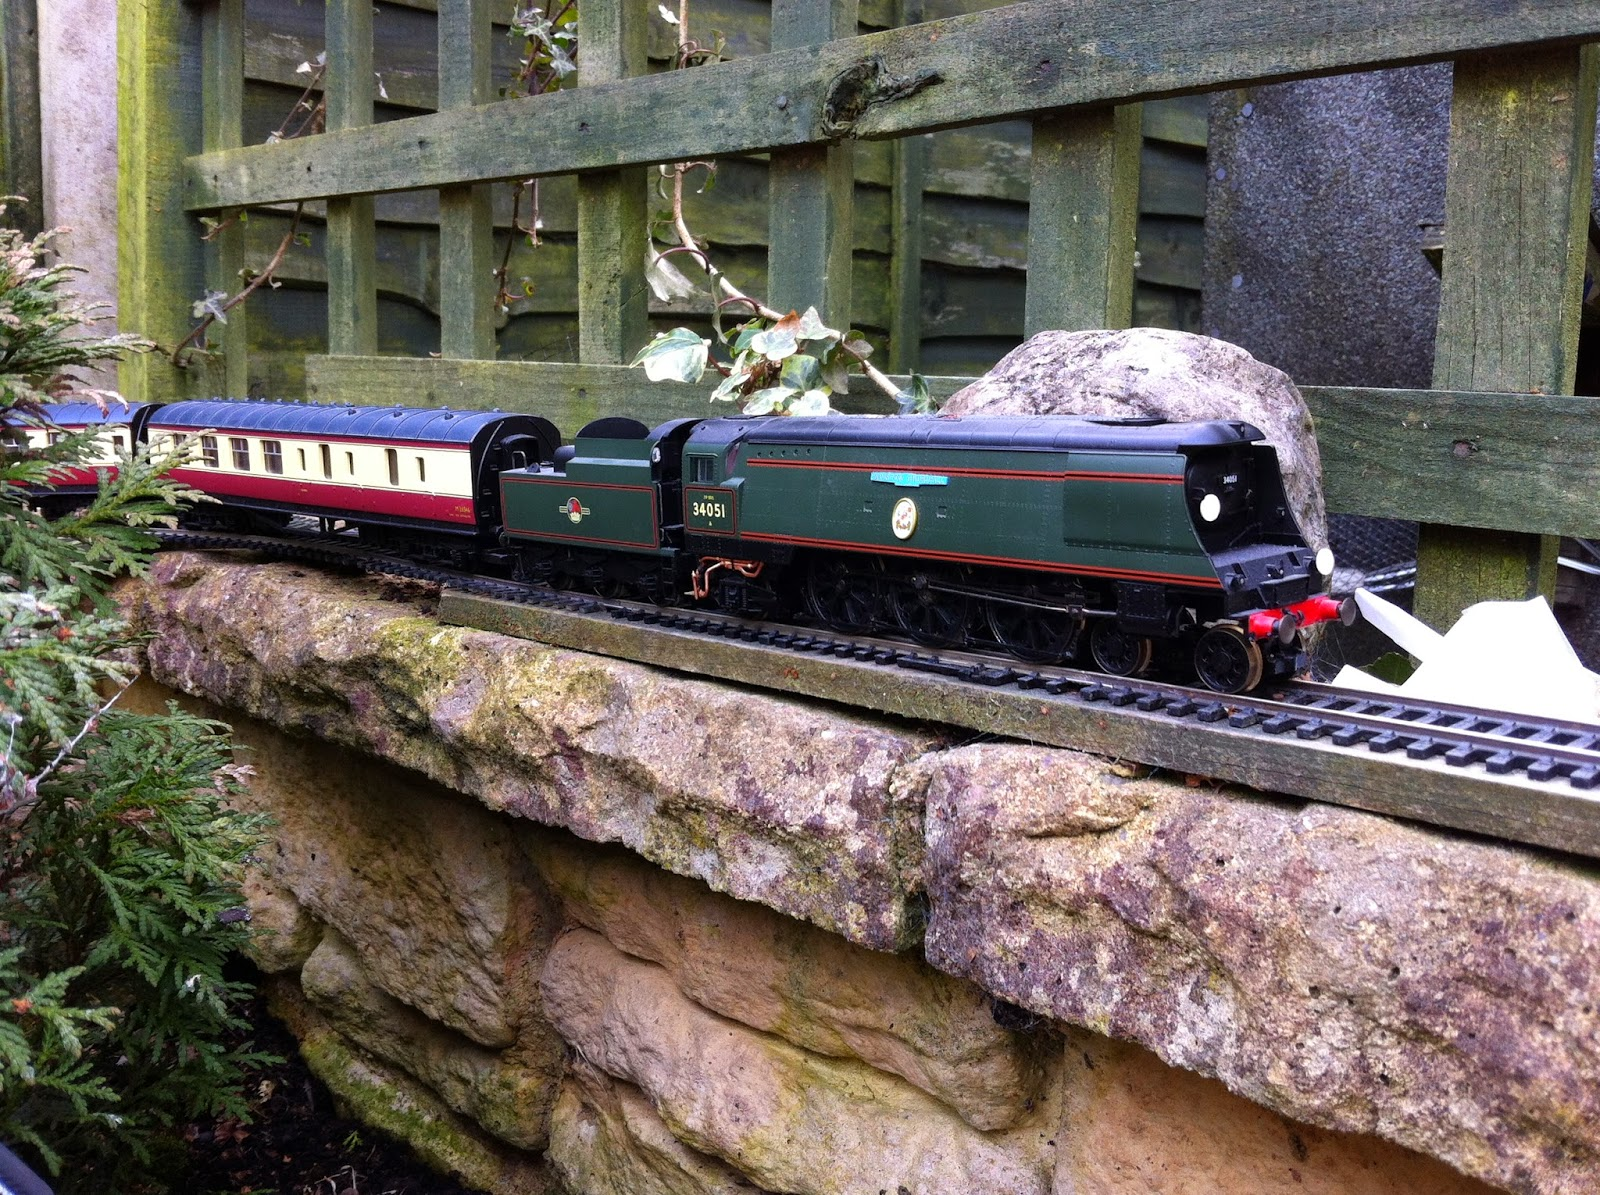 Wonderful So There We Have It, The Garden Railway Has Returned! I Am Hoping That The  00 Gauge Metals Of The Old SSR Will See A Good Few More Trains This Year As  ...